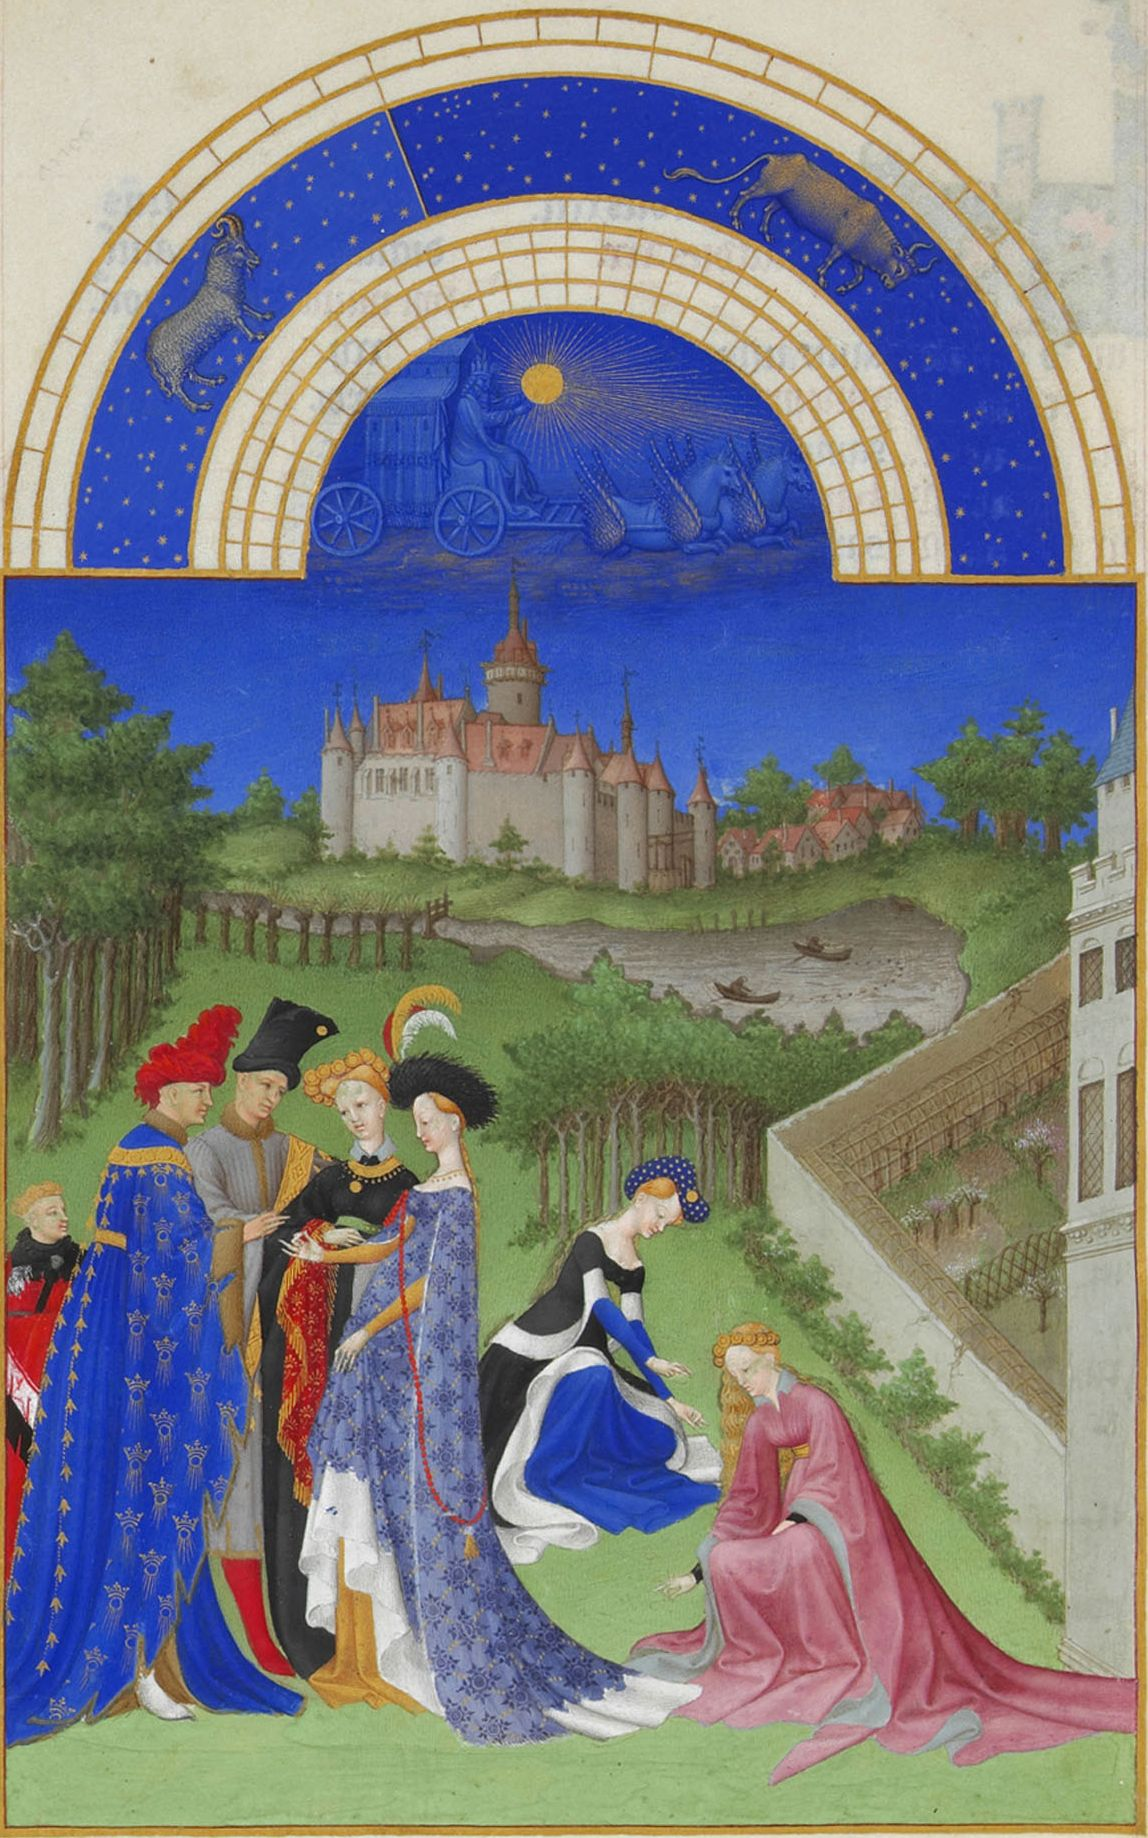 """Limbourg Brothers, """"The Book of Hours."""" A pair of newlyweds exchanged rings in the garden, in the presence of family and friends"""